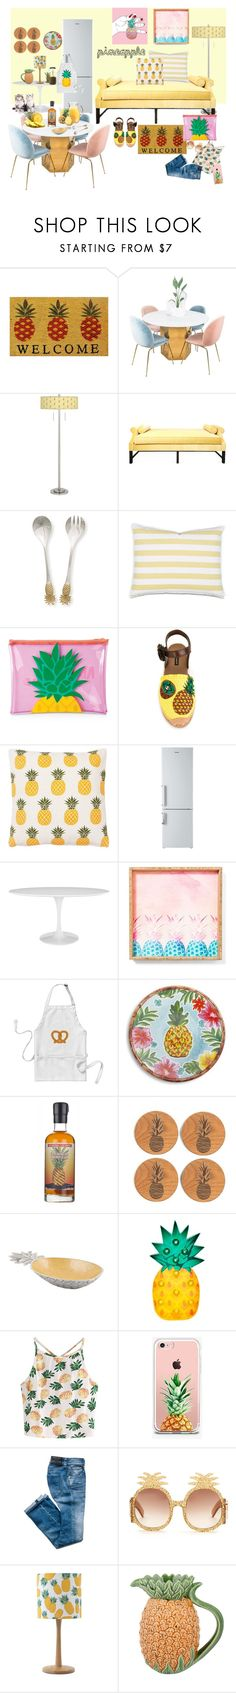 """""""pineapple"""" by gpatricia ❤ liked on Polyvore featuring interior, interiors, interior design, home, home decor, interior decorating, Momentum Mats, Giclee Glow, Kristin Drohan Collection and Sunnylife"""